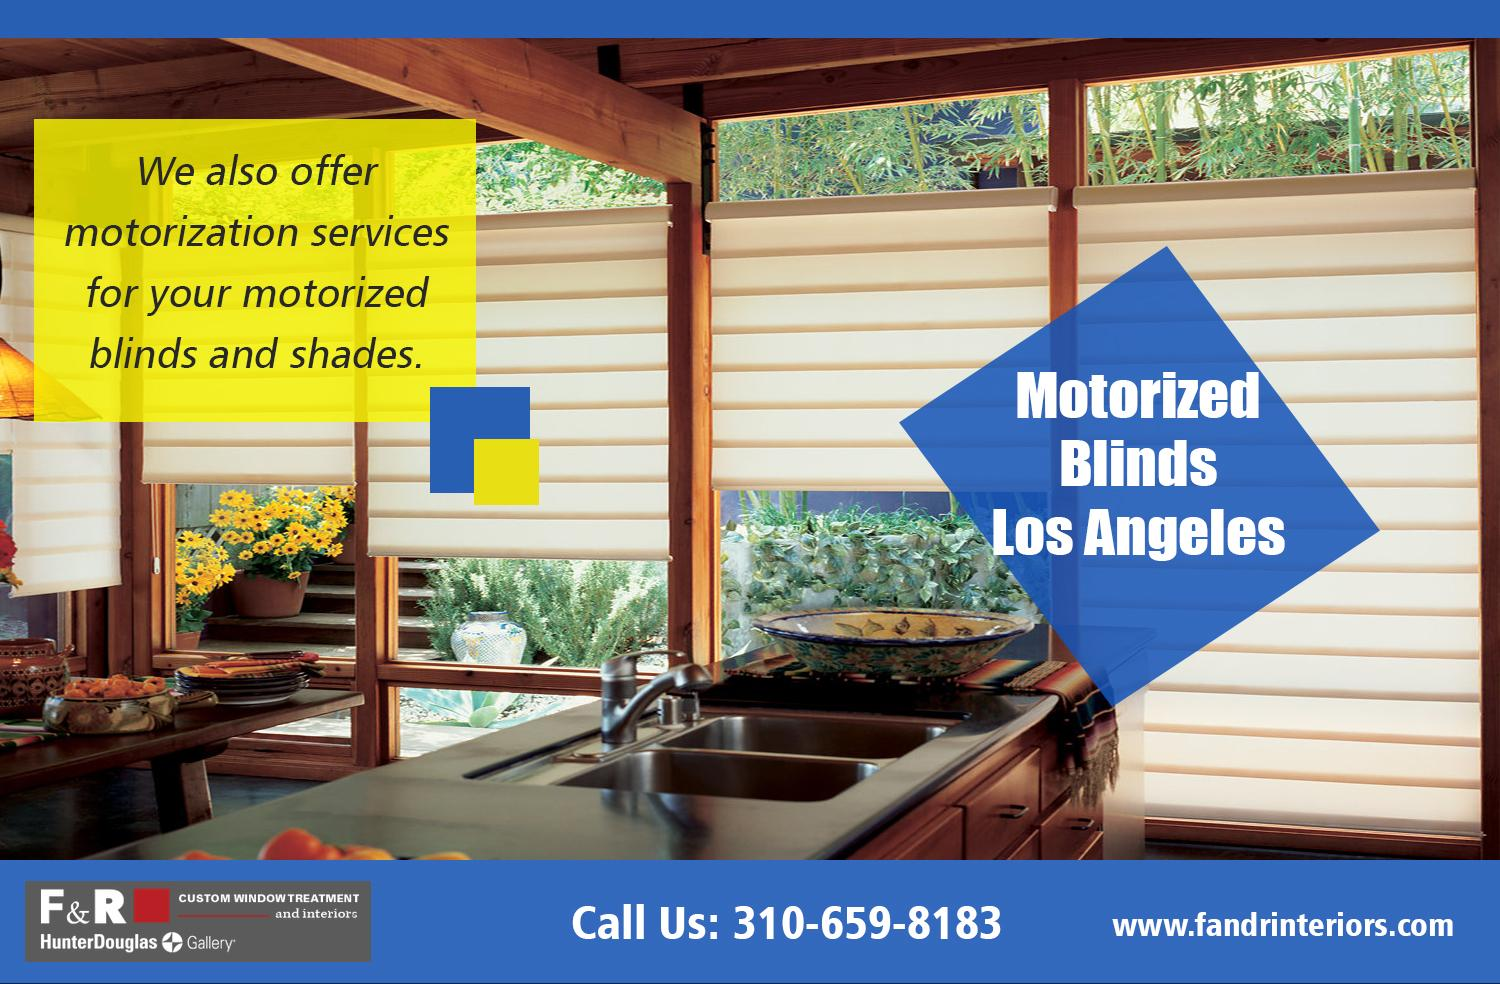 Motorized blinds Los Angeles| http://fandrinteriors.com/